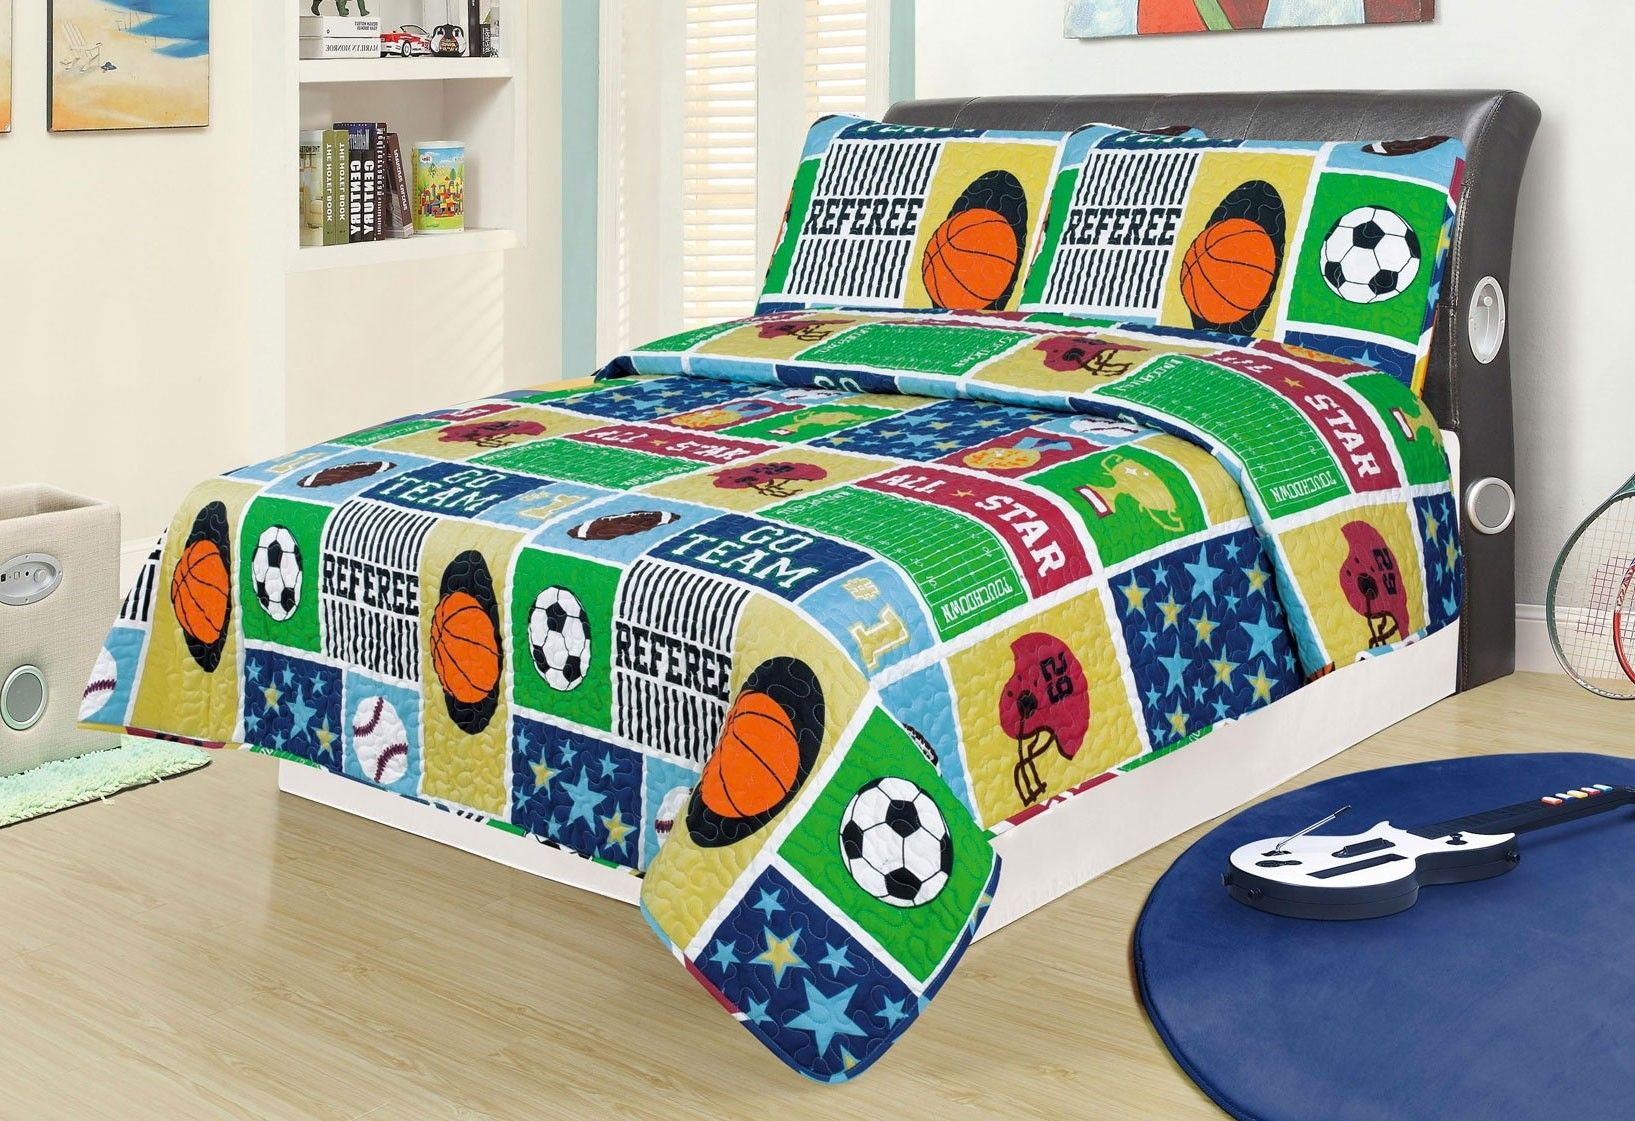 Boys Twin Size # 5 Elegant Home Decor Elegant Home Kids Multicolor Orange Red Blue Green Beige Sports Soccer Hockey Basketball Baseball Design Fun Colorful 2 Piece Coverlet Bedspread Quilt for Kids